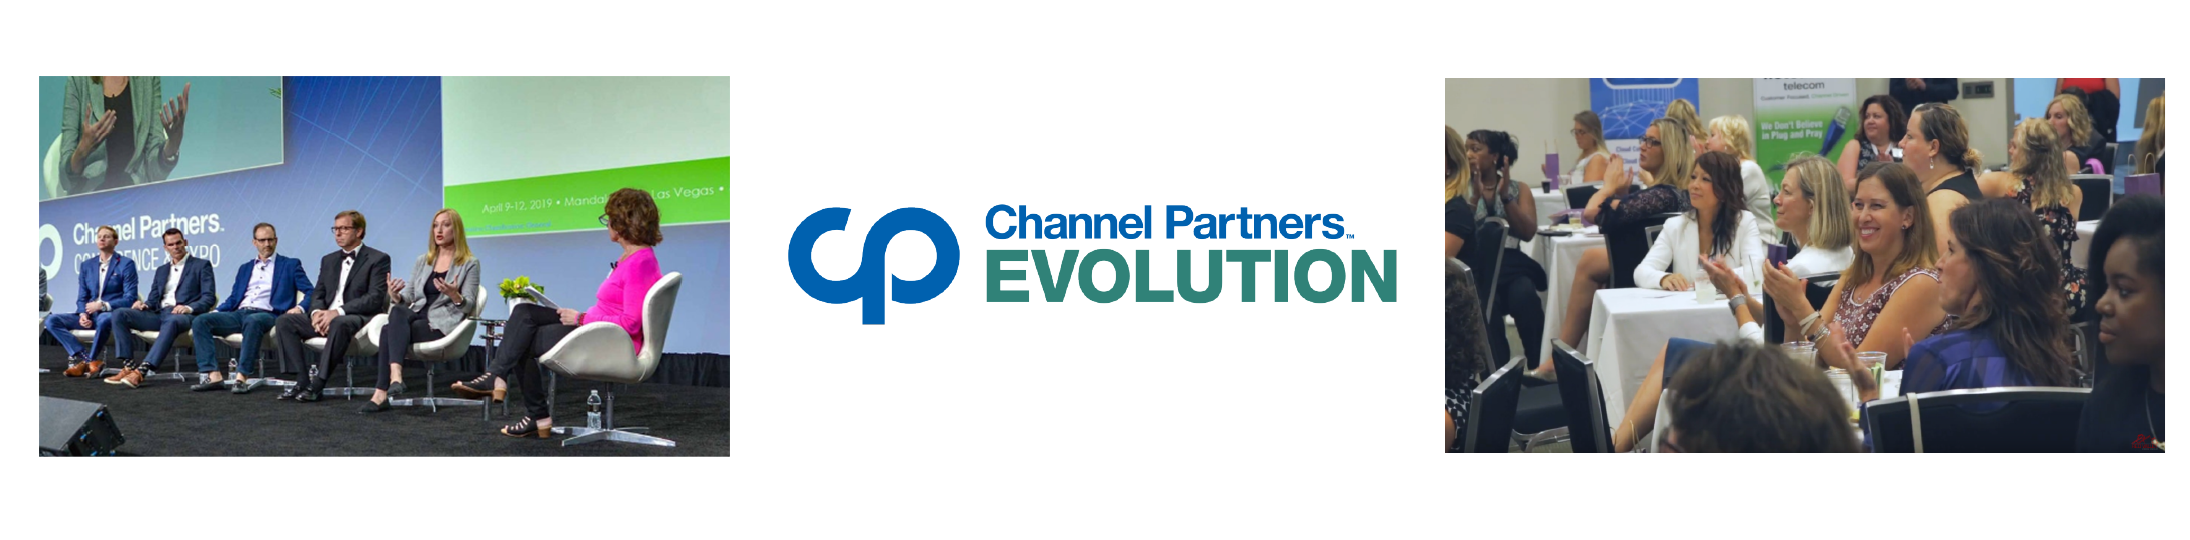 2017 CPE, 2017 channel partners evolution, Video Production, Film, Director, Producer, Video Producer, Corporate Video, Highlight Video, Sizzle Reel, Promo Video, Video Editing, Post-Production, Adobe Premiere, Editing, Conference, Trade Show, Exhibit, Expo, Marketing, Promotional Material, Recap, Las Vegas Video Production, Video Production Las Vegas, Las Vegas, Nevada, Video Production Chicago, Chicago Video Production, New York City Video Production, Video Production New York City, NYC Video Production, Video Production NYC, Orlando Video Production, Video Production Orlando, Los Angeles Video Production, Video Production Los Angeles, Orlando Florida, Chicago Illinois, Los Angeles California, New York City New York